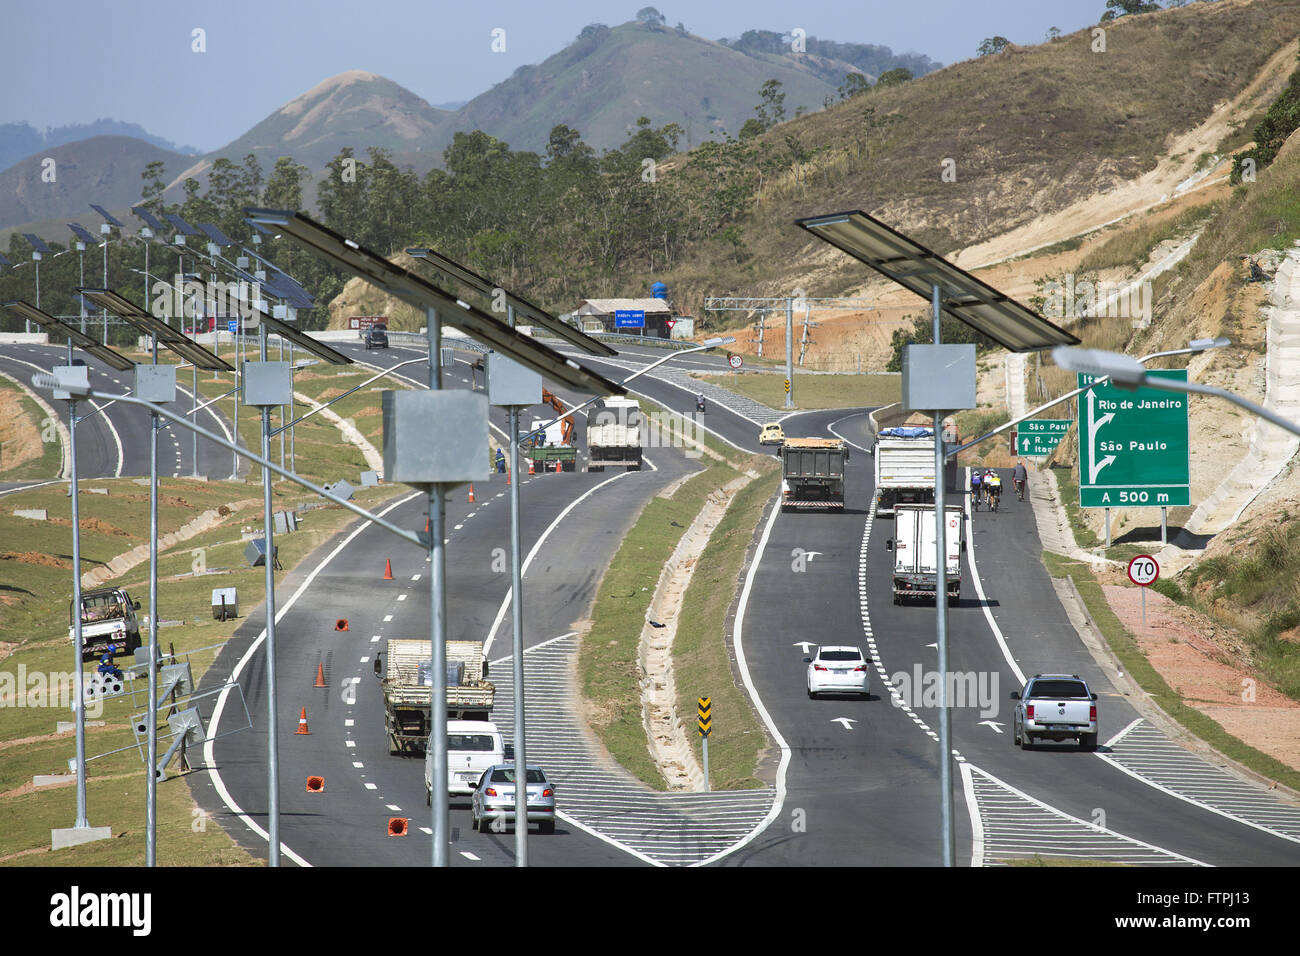 Solar plates on the edge of Highway ring road - Stock Image